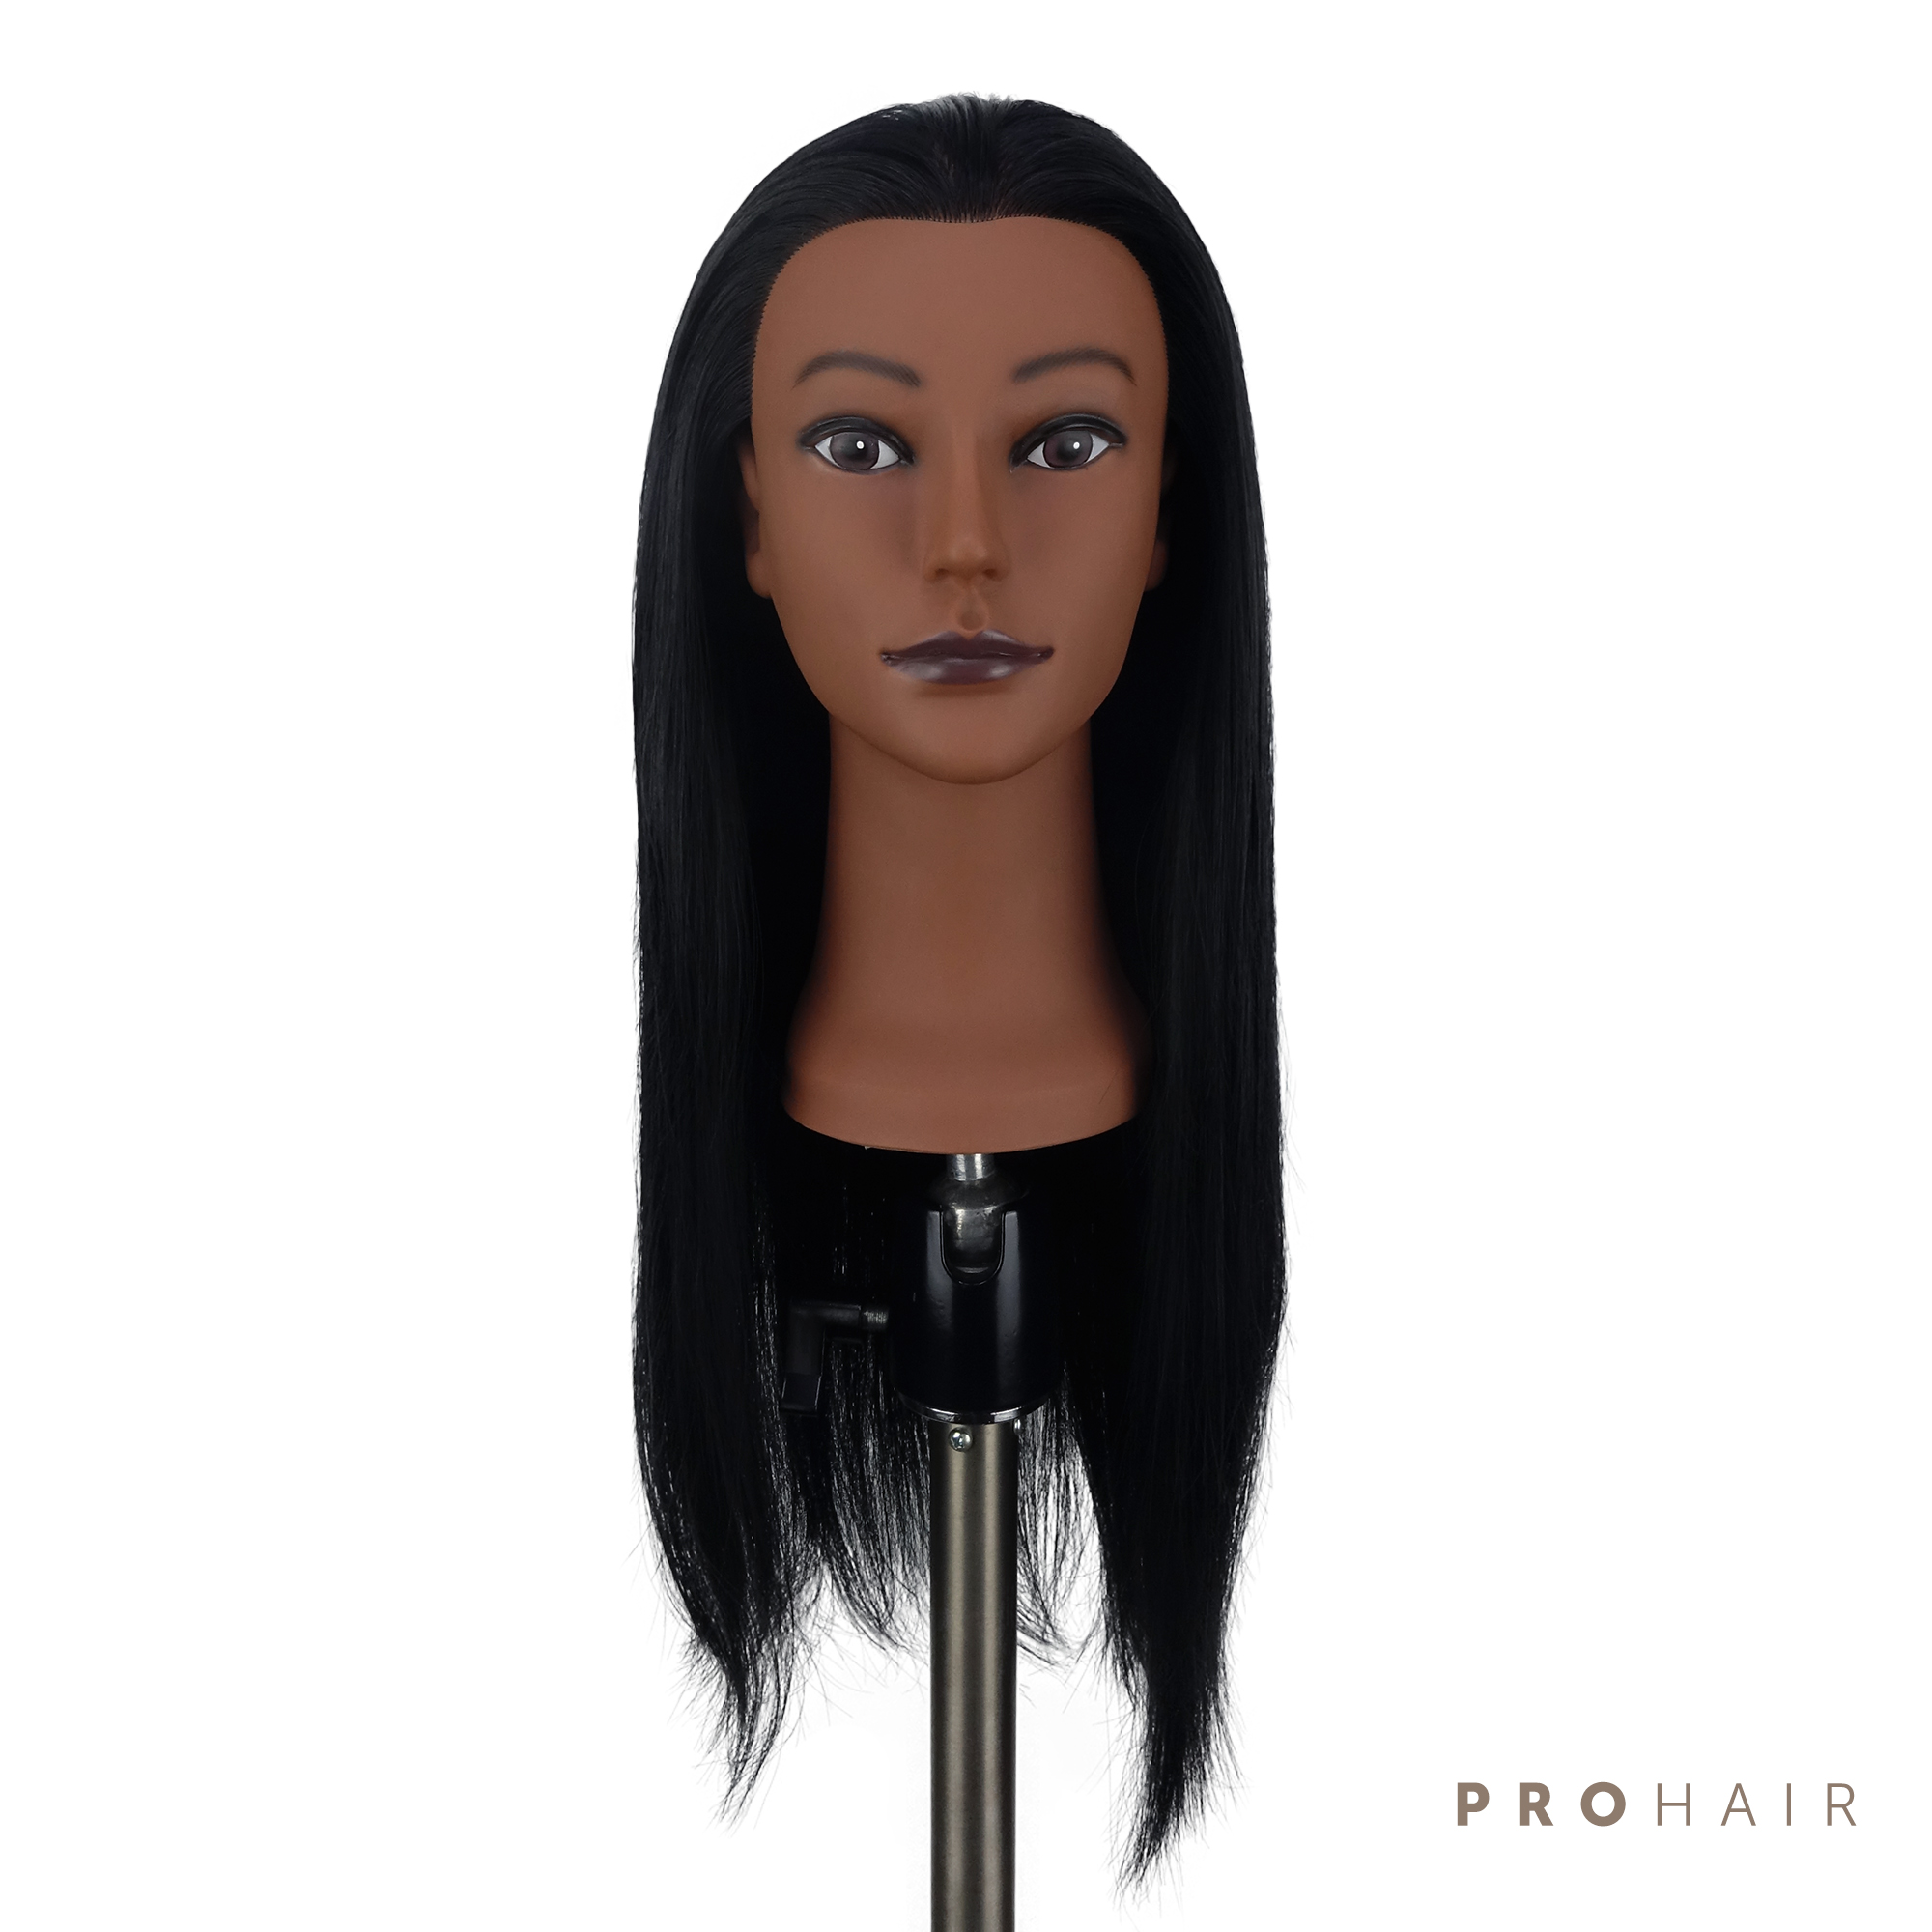 PROHAIR 45CM 18 100 Synthetic Hair Black MINI Training Head Salon Female Mannequin Head Hairdressing Practice